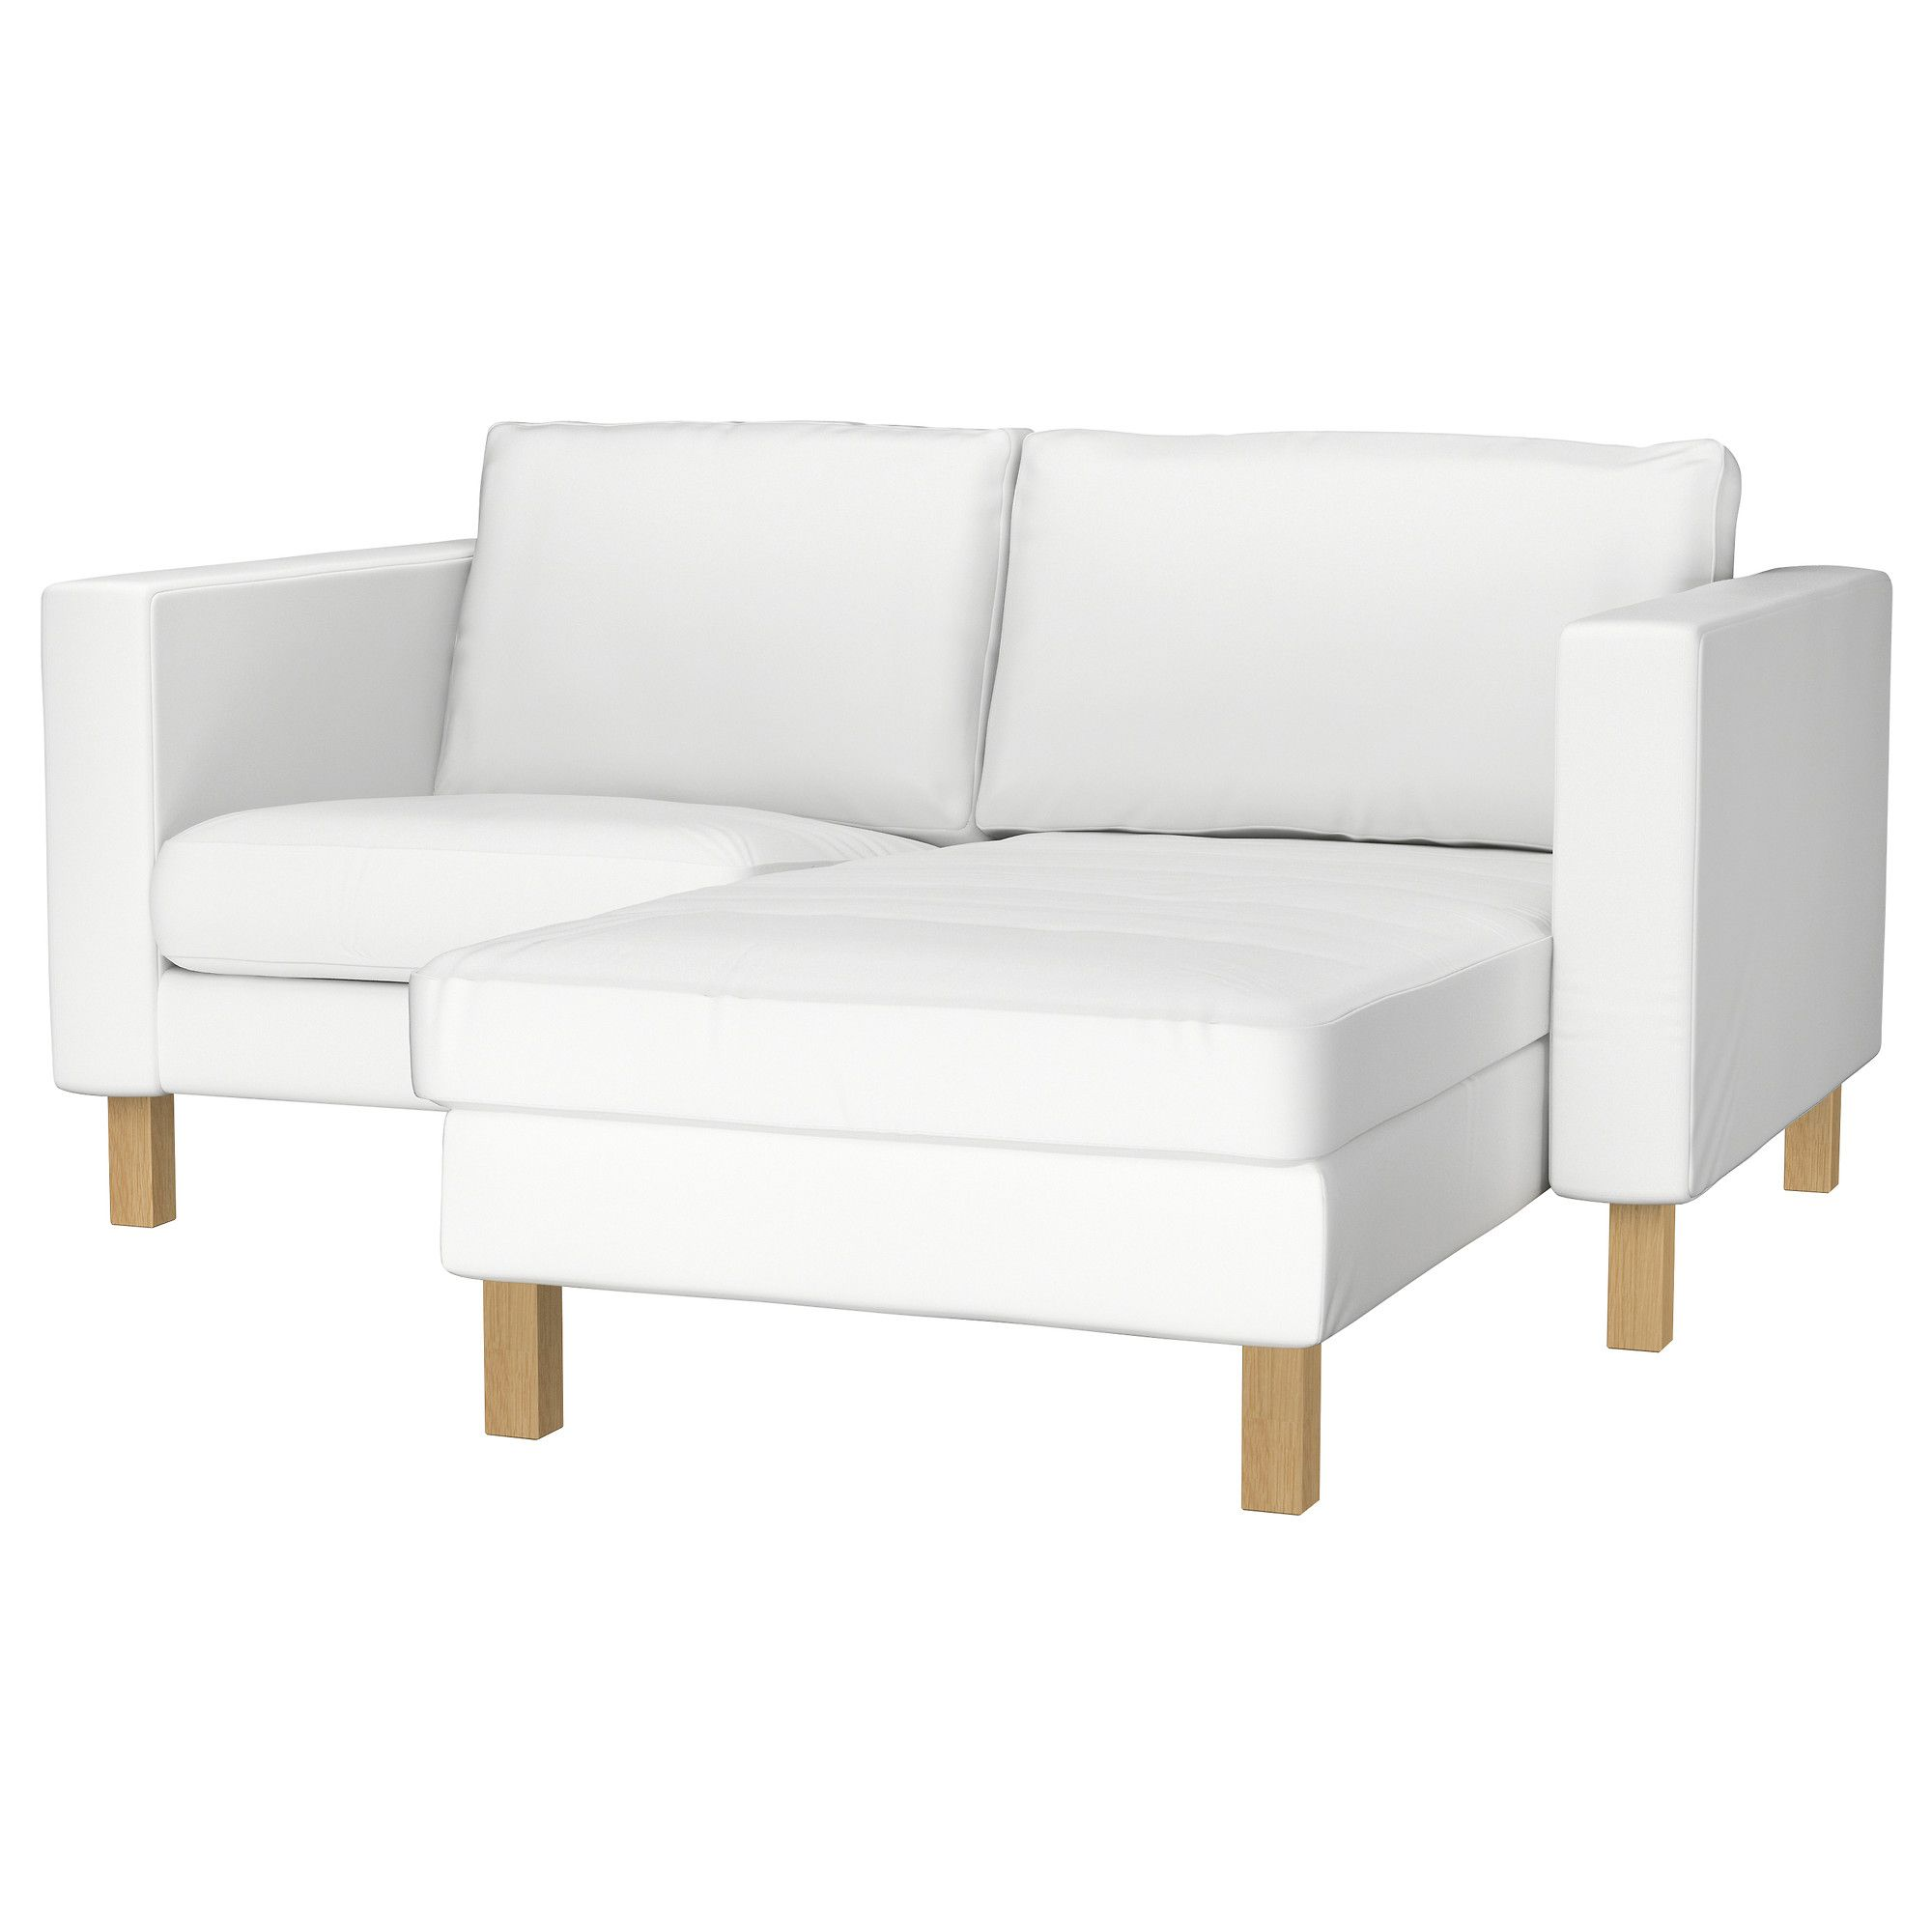 KARLSTAD Armchair and chaise lounge Blekinge white IKEA This